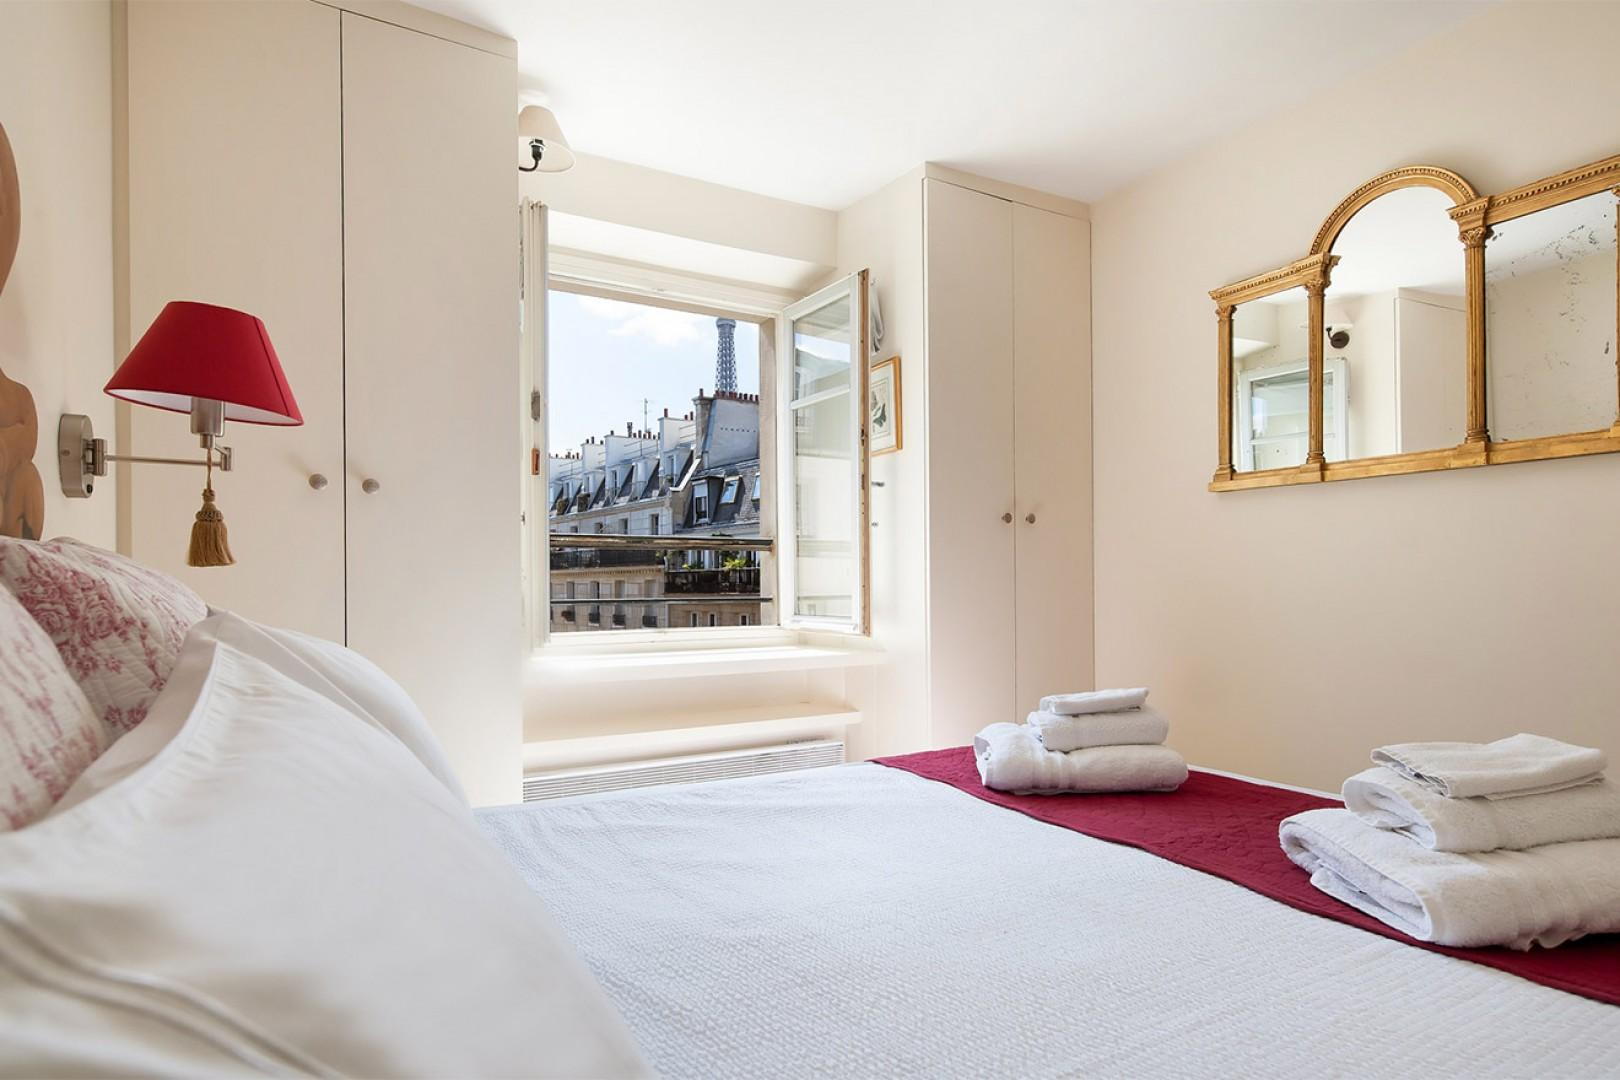 The romantic bedroom has views of the Eiffel Tower!